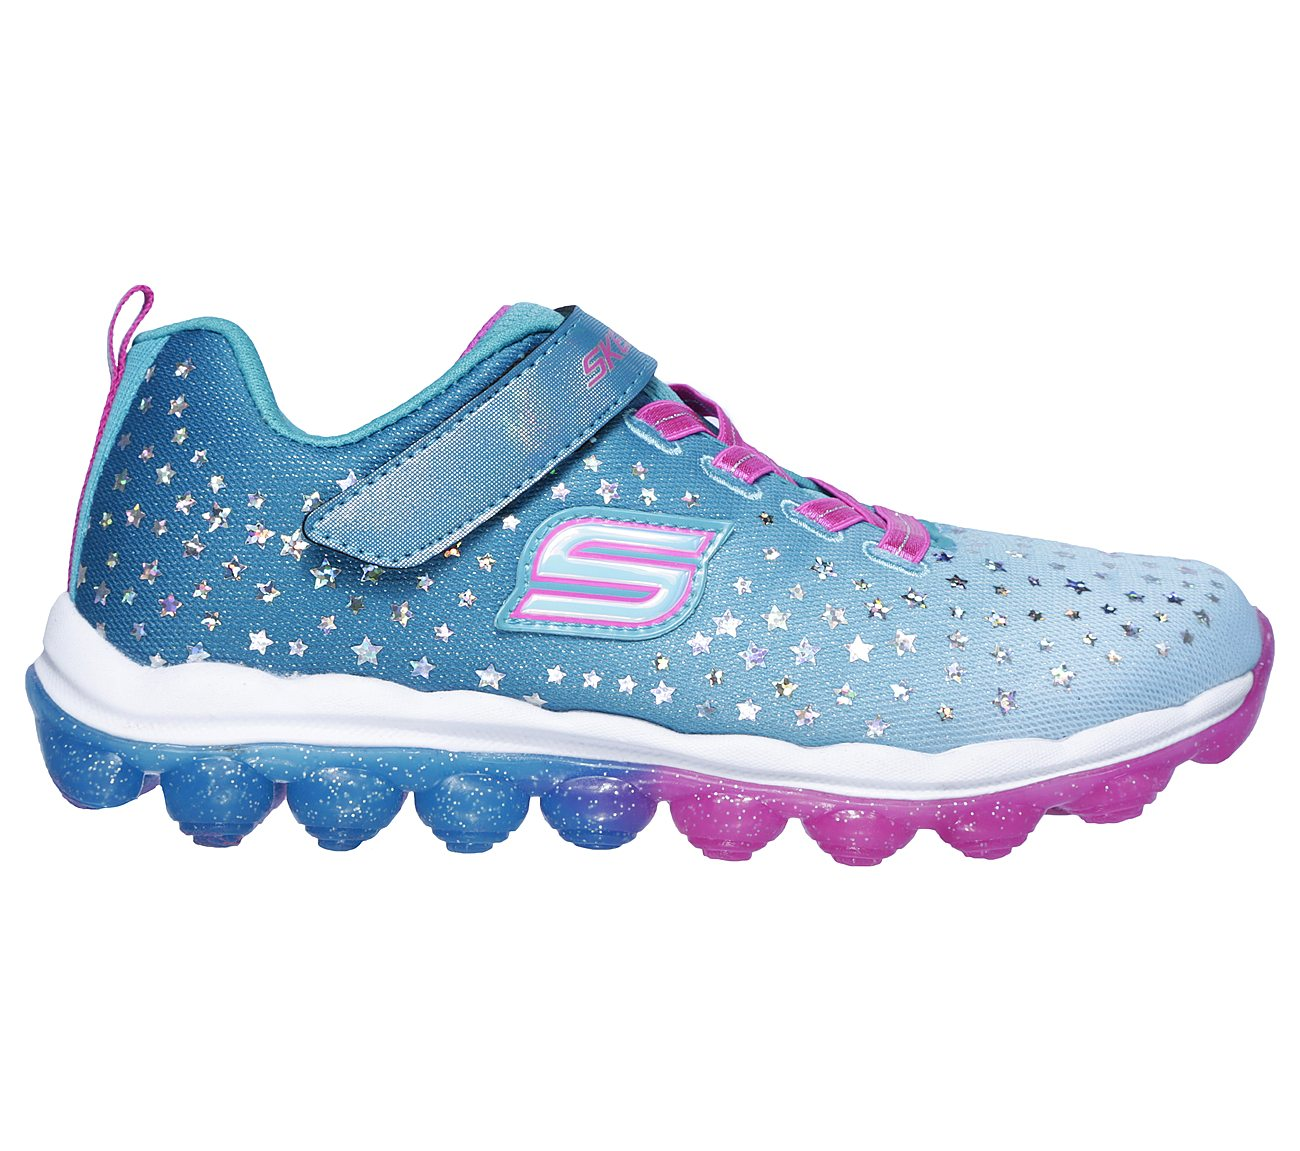 She'll want to leap high as the starry sky wearing the SKECHERS Skech Air Star Jumper shoe. Skech Knit Mesh fabric upper in a slip on athletic